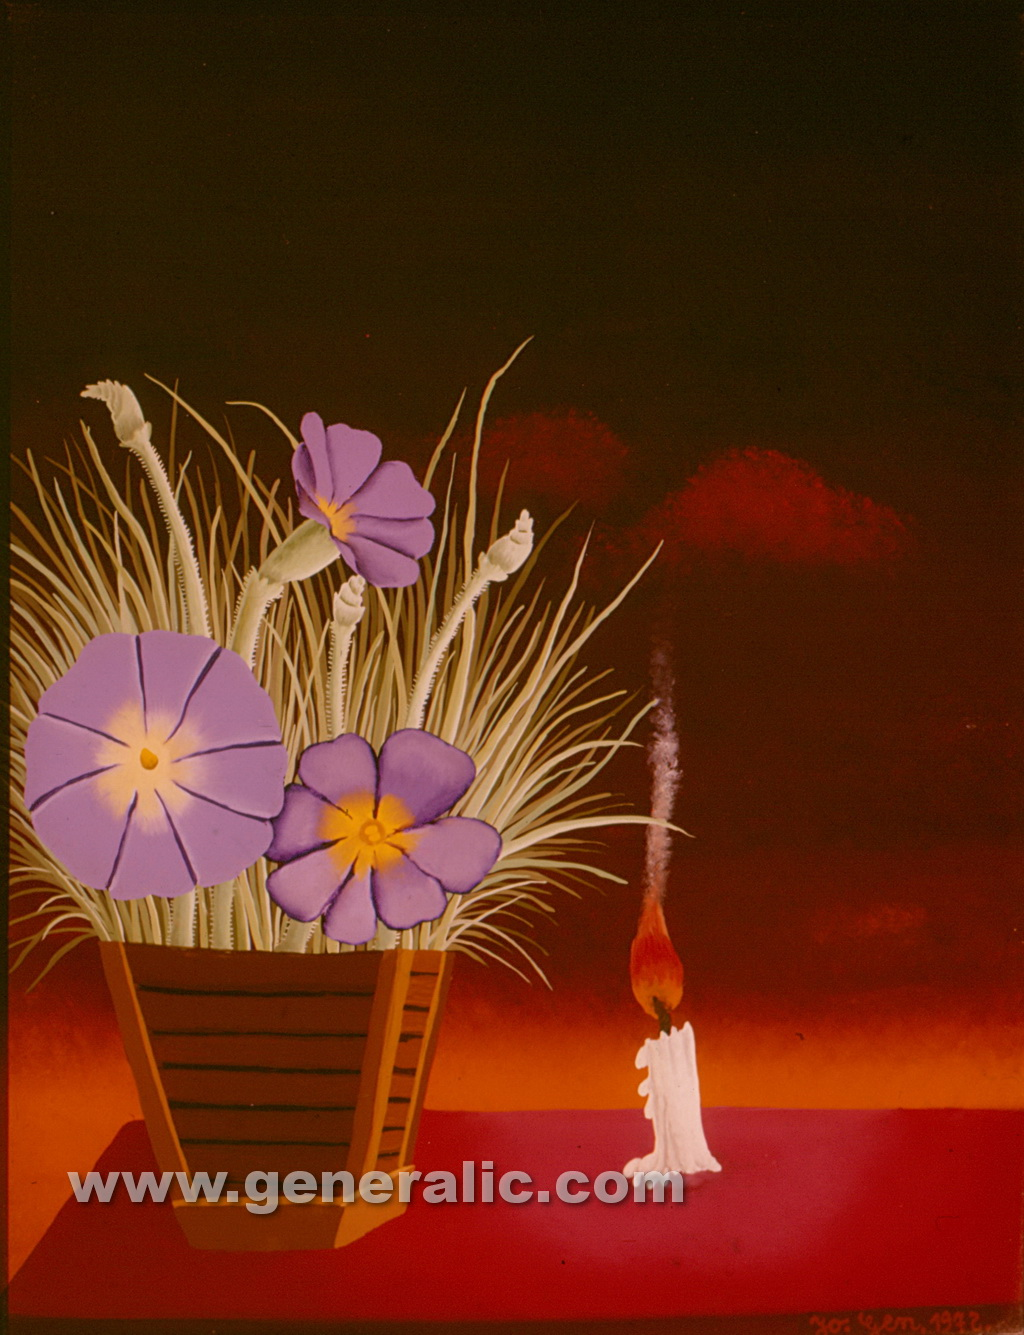 Josip Generalic, 1972, Flowers and candle, oil on glass, 36x28 cm